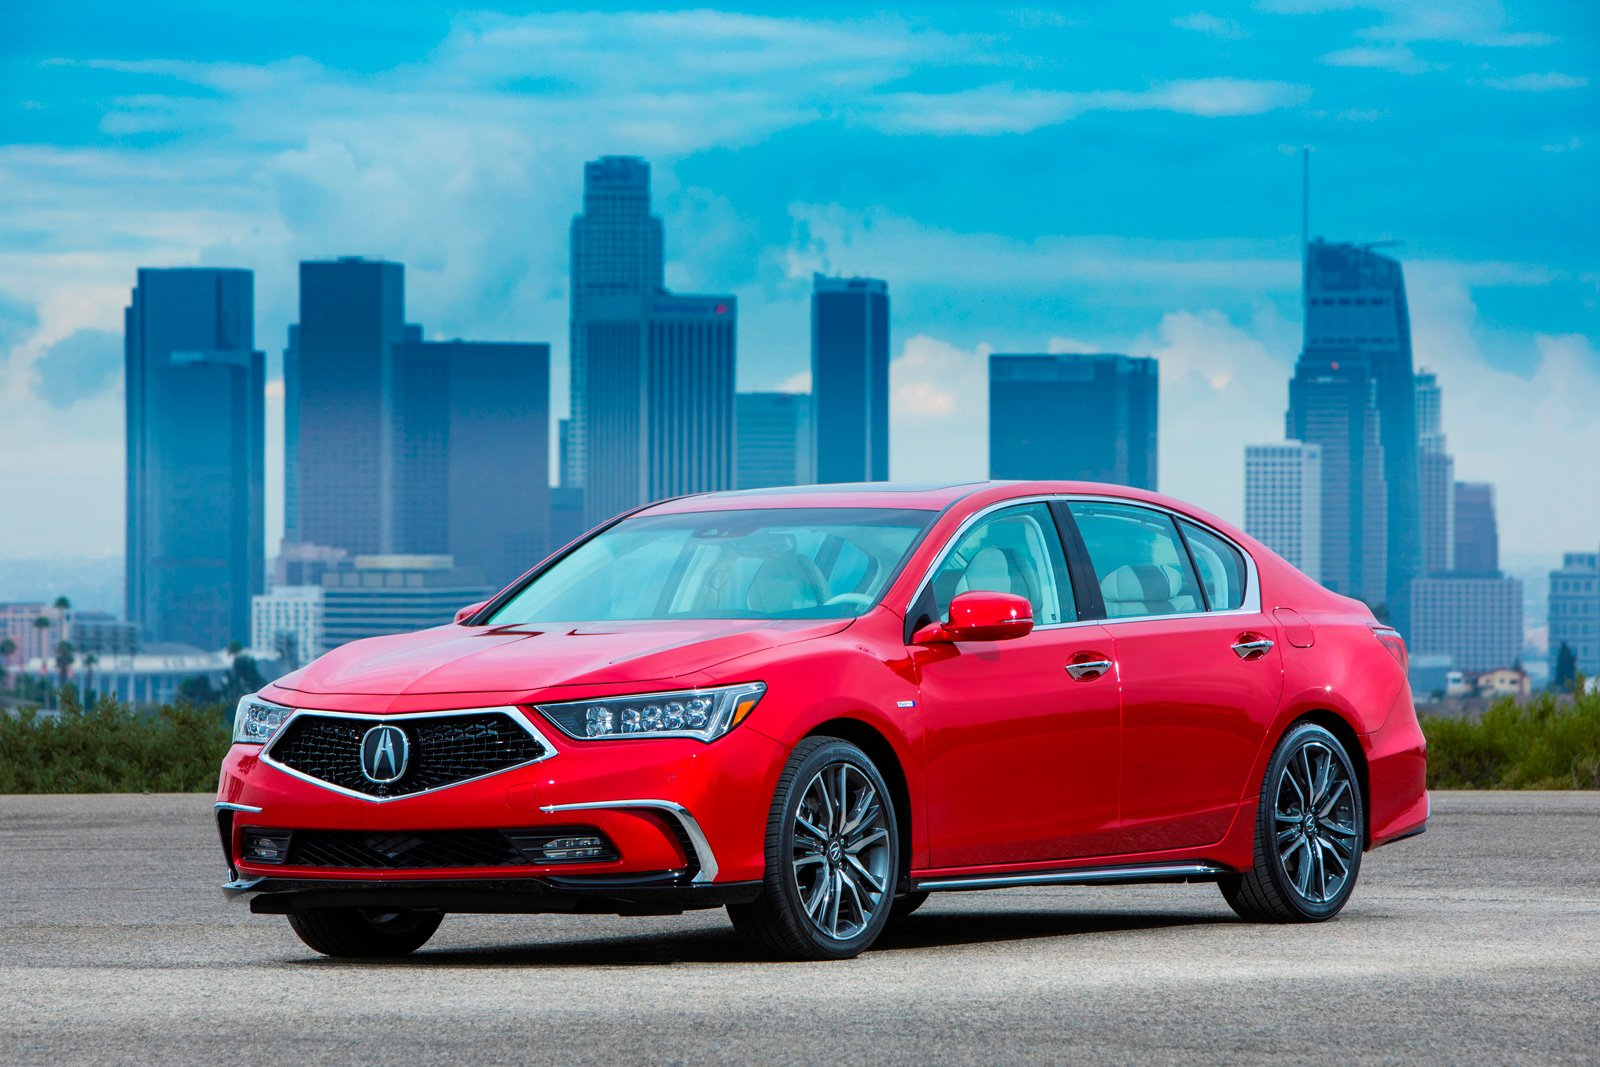 2018 Acura Rlx Pricing Announced Sport Hybrid Gets